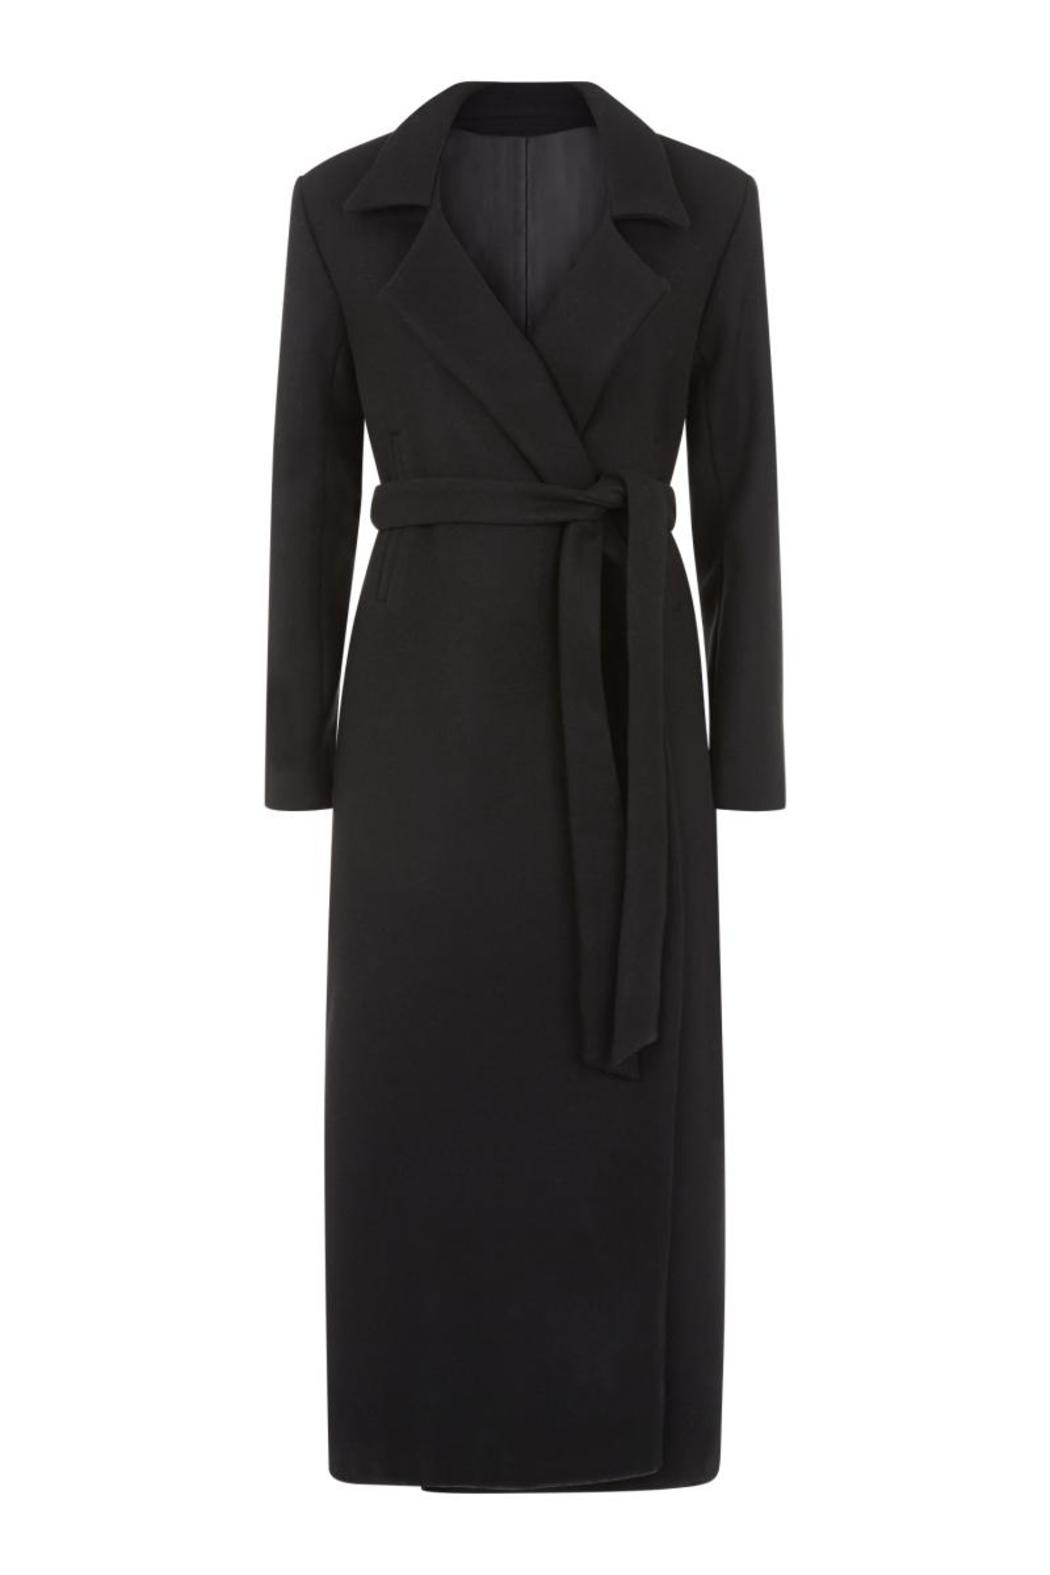 Charlie May Duster Jacket - Front Cropped Image